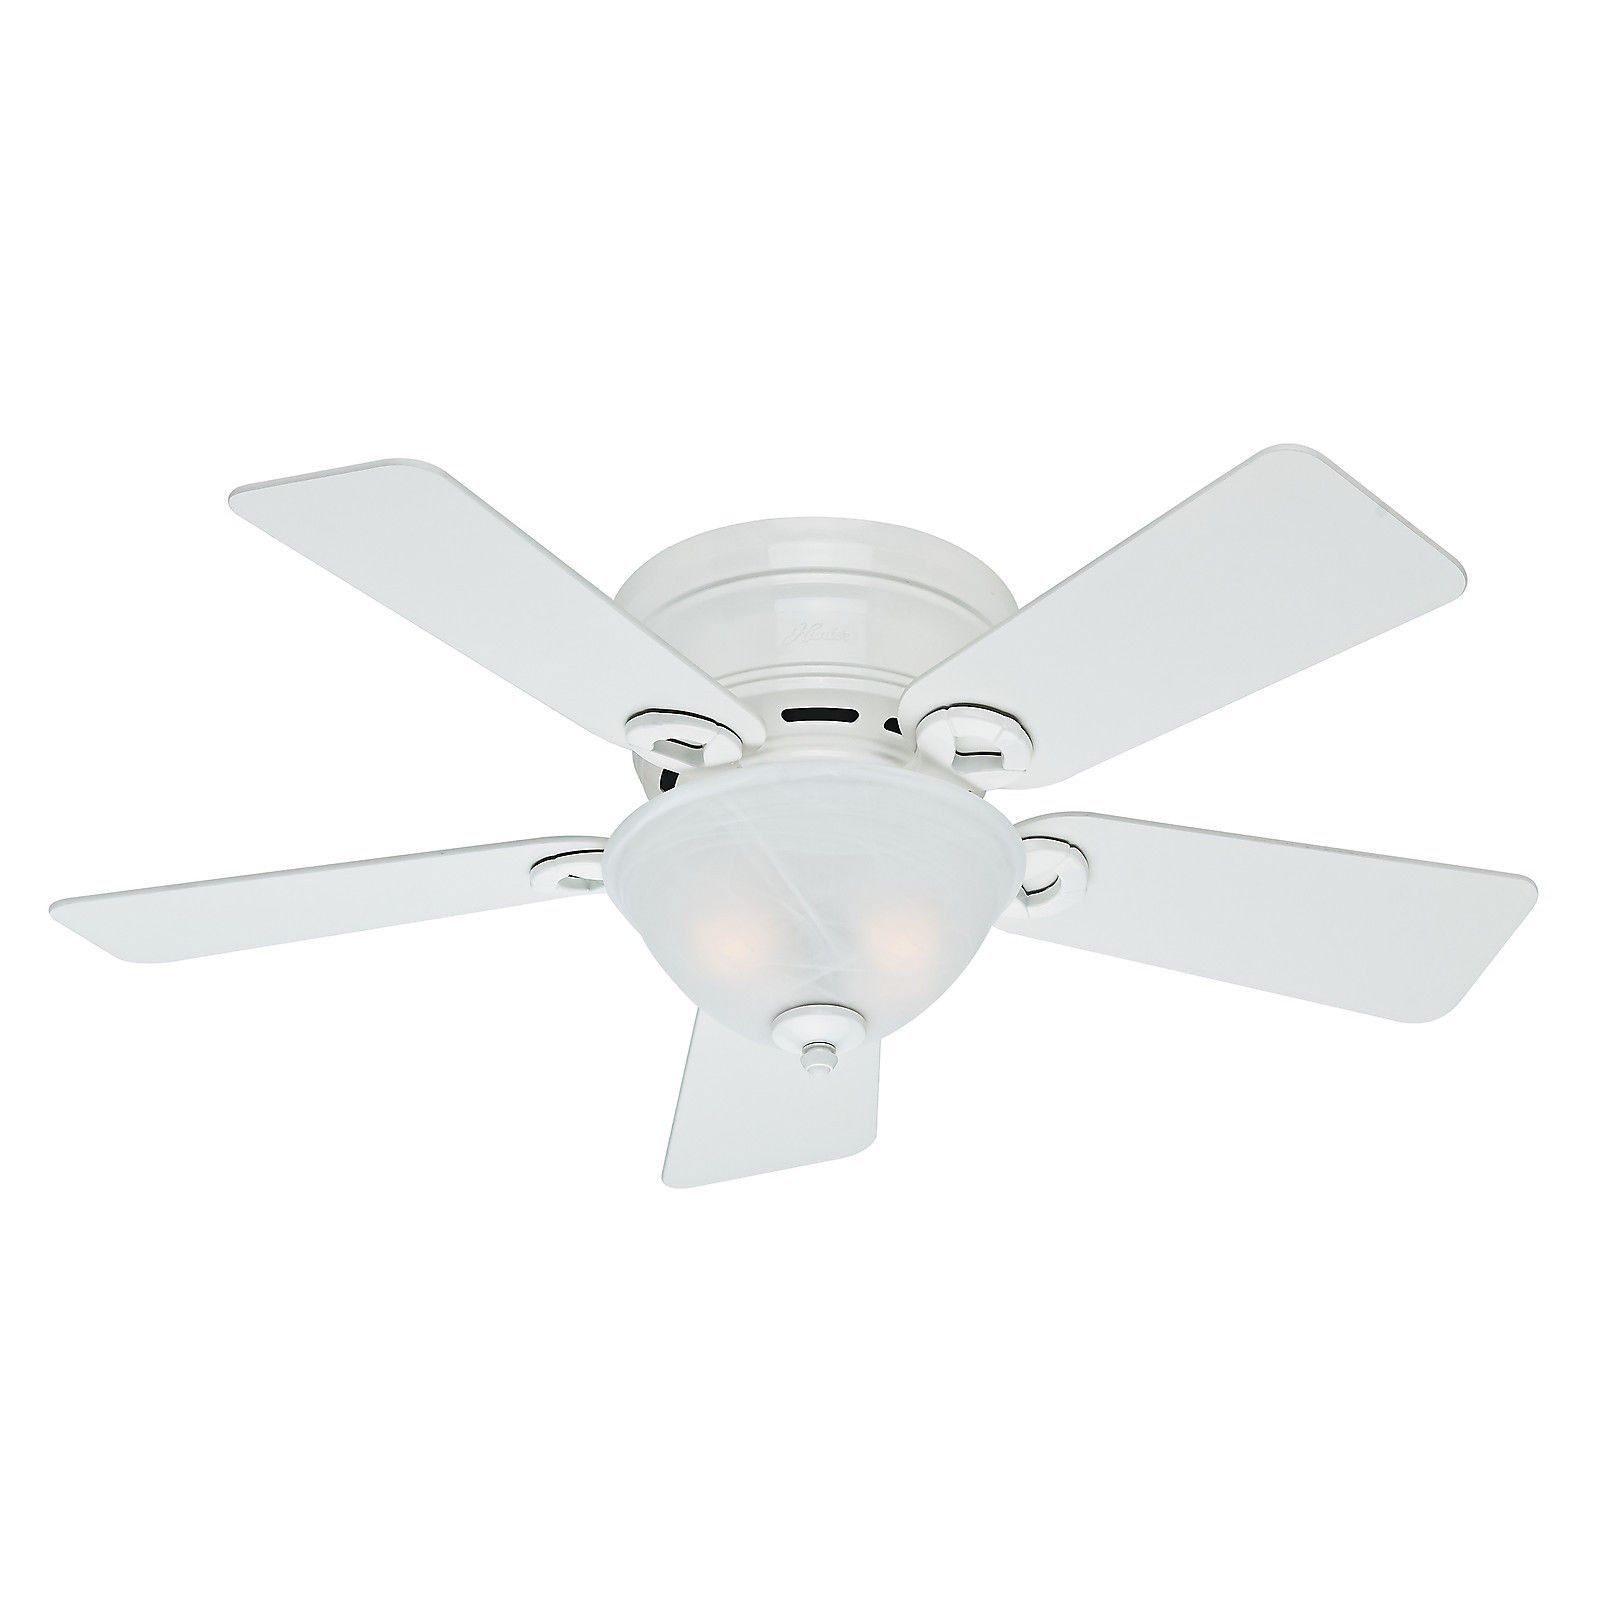 Low Profile Ceiling Fan With Light White